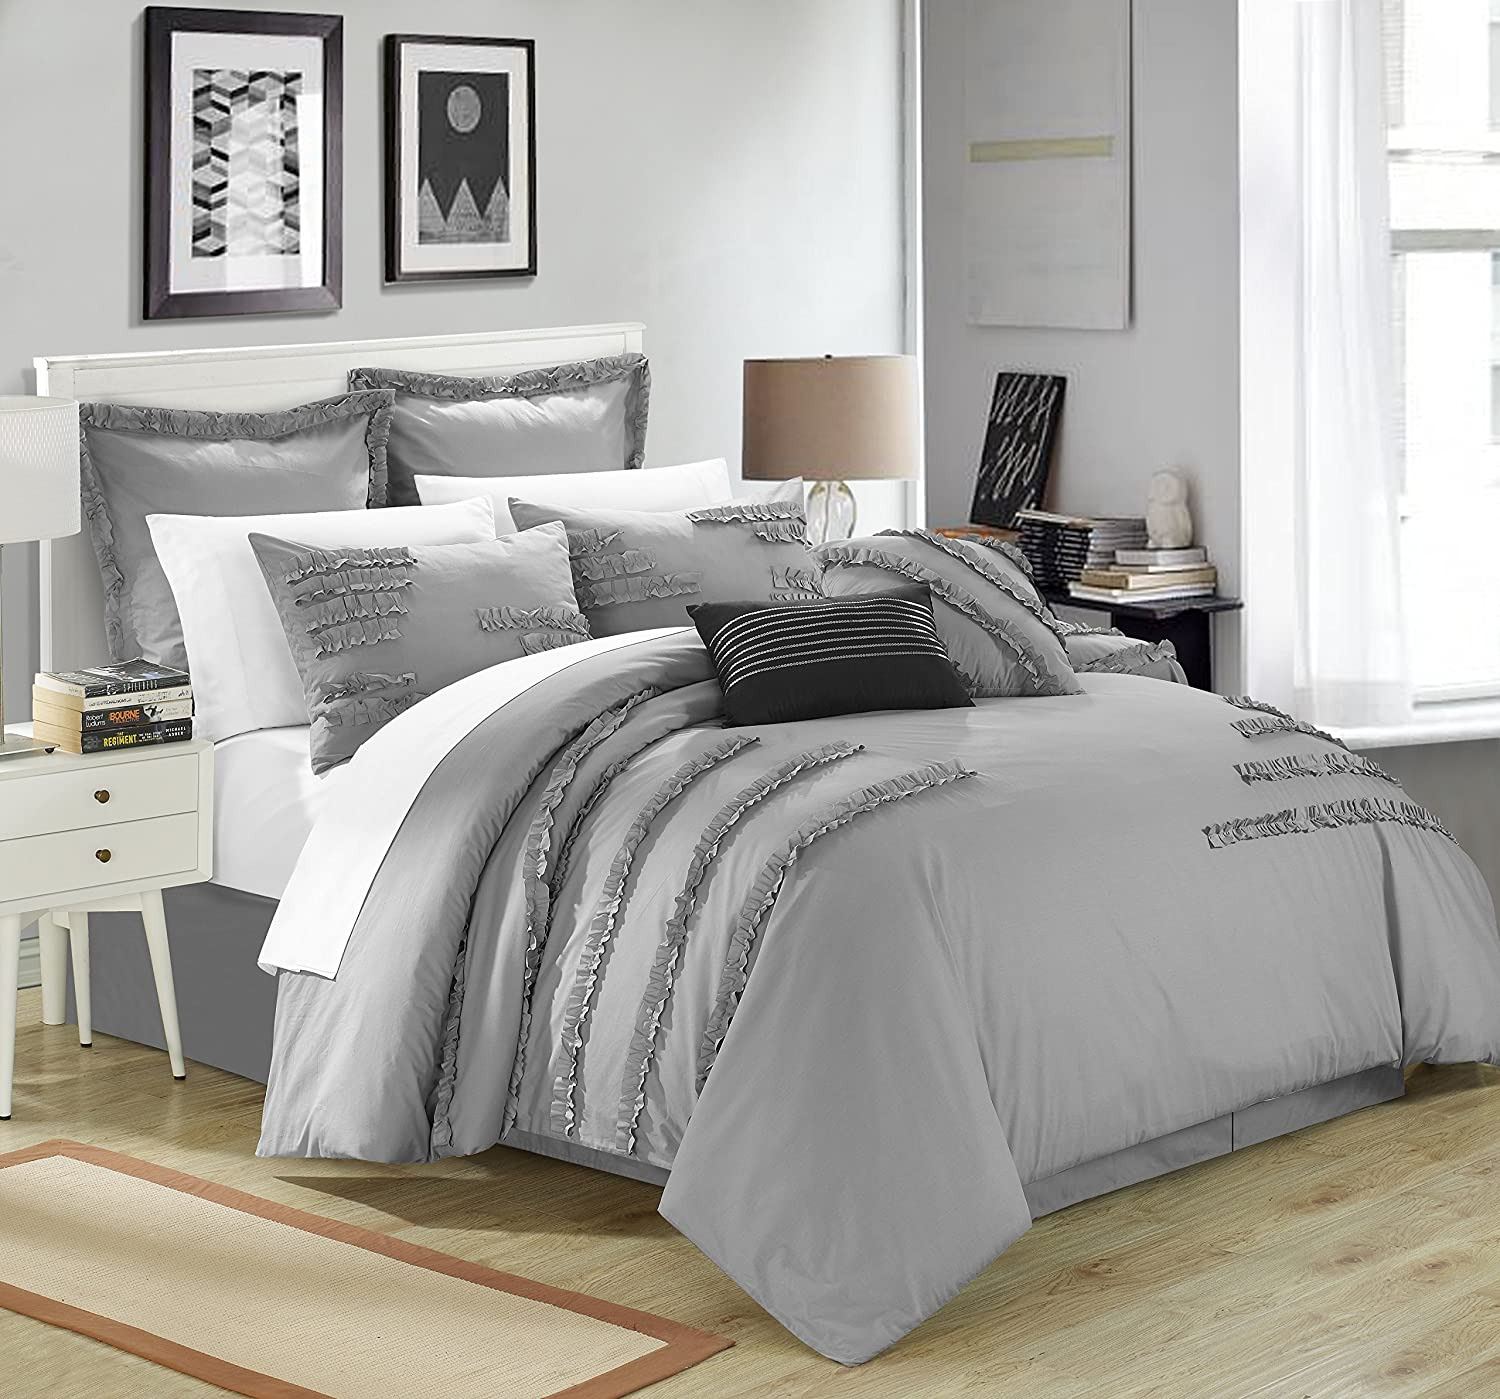 Chic Home 8 Piece Sweet Grass Geo Ruffled & Pleated Comforter Set, Queen, Grey